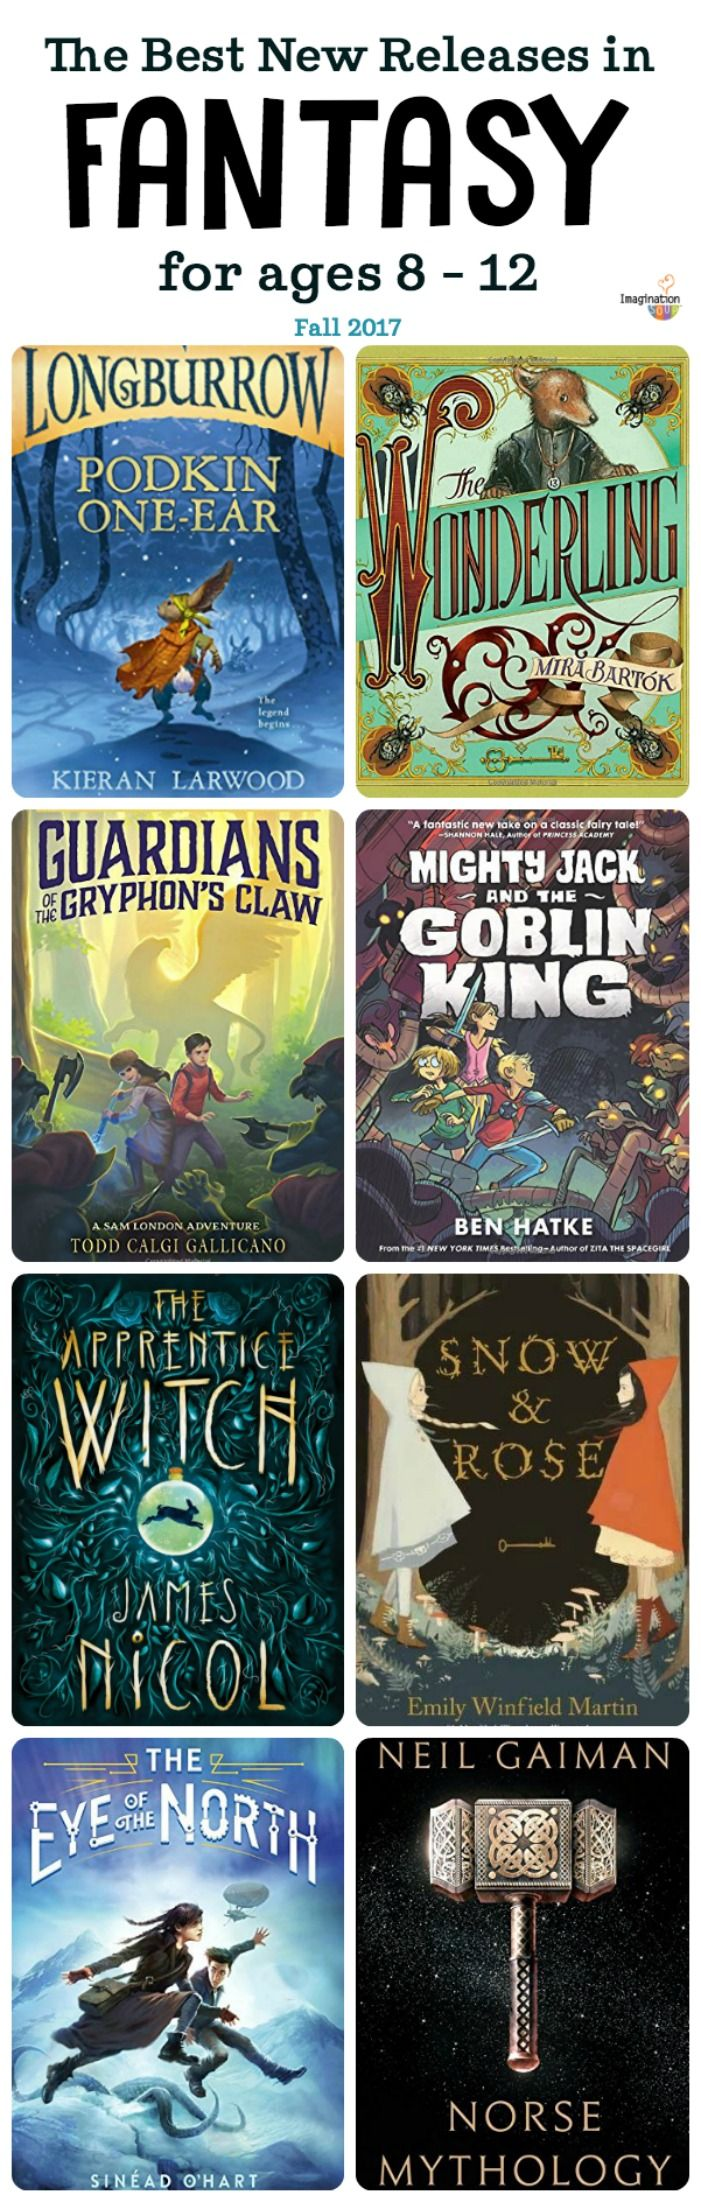 check out these awesome fantasy book new releases for elementary and middle school kids